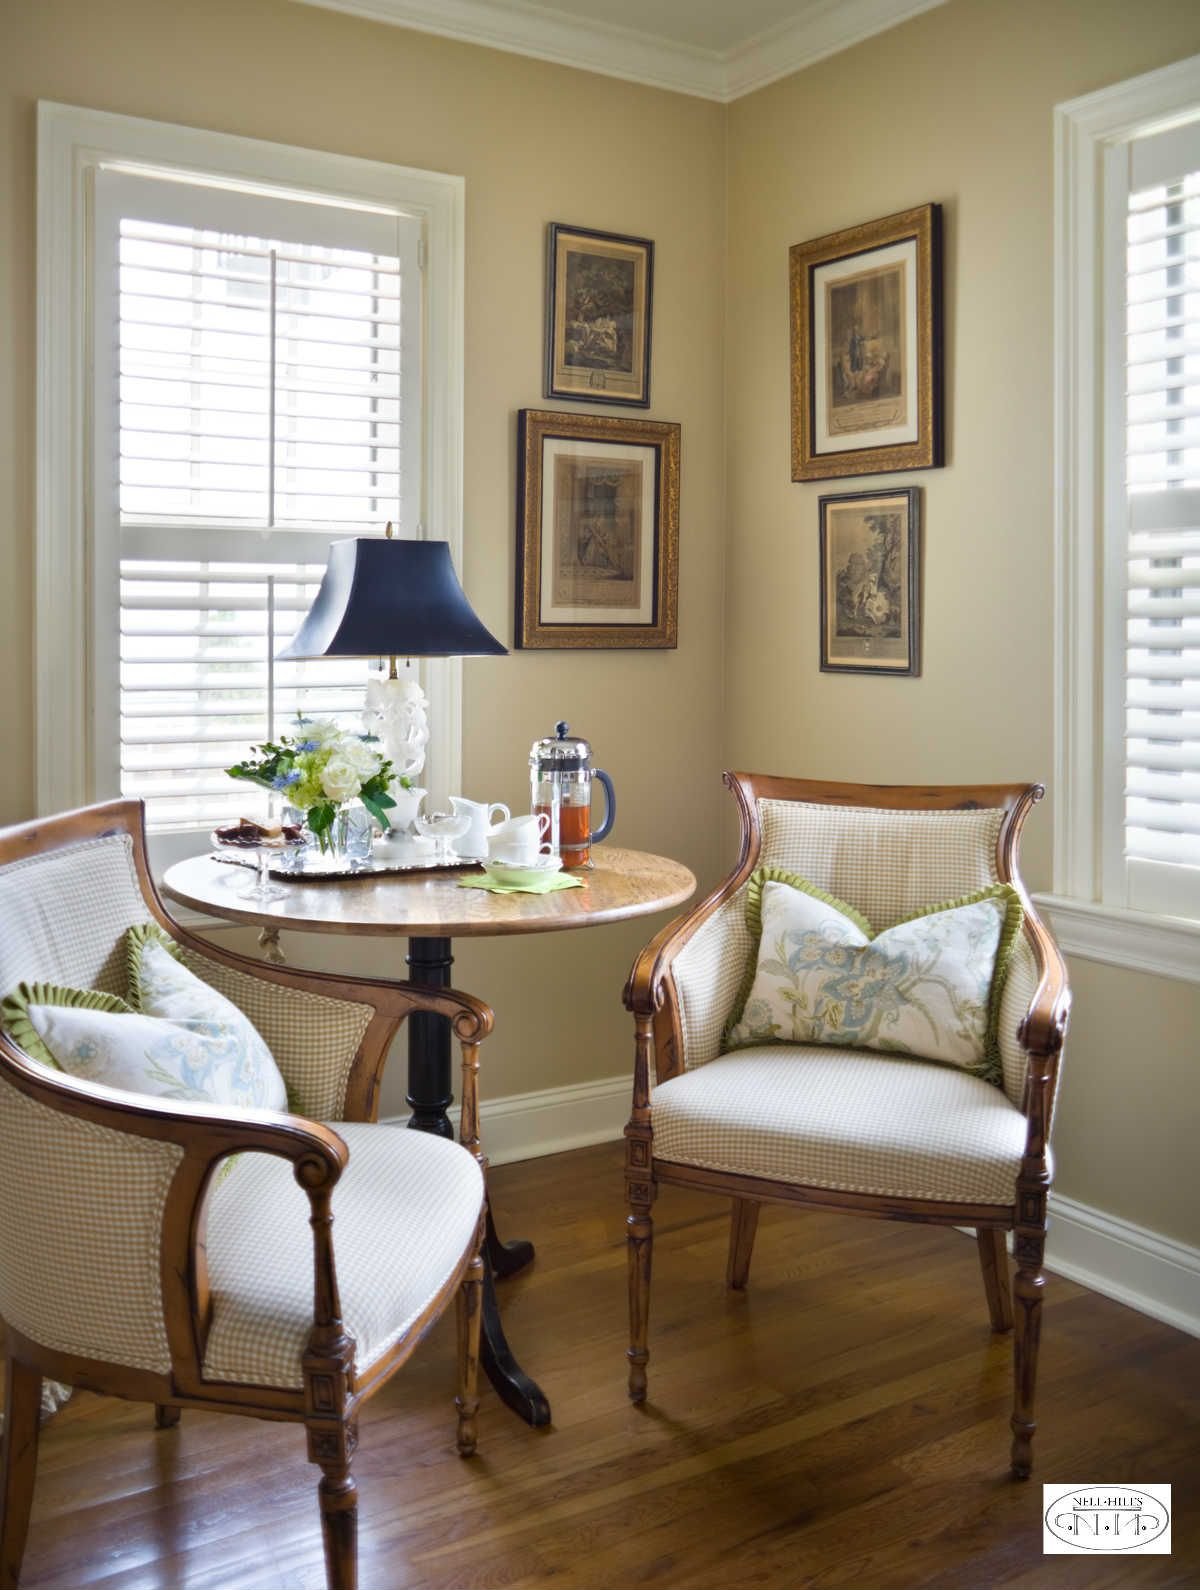 Create An Attractive Breakfast Nook With A Cafe Table And